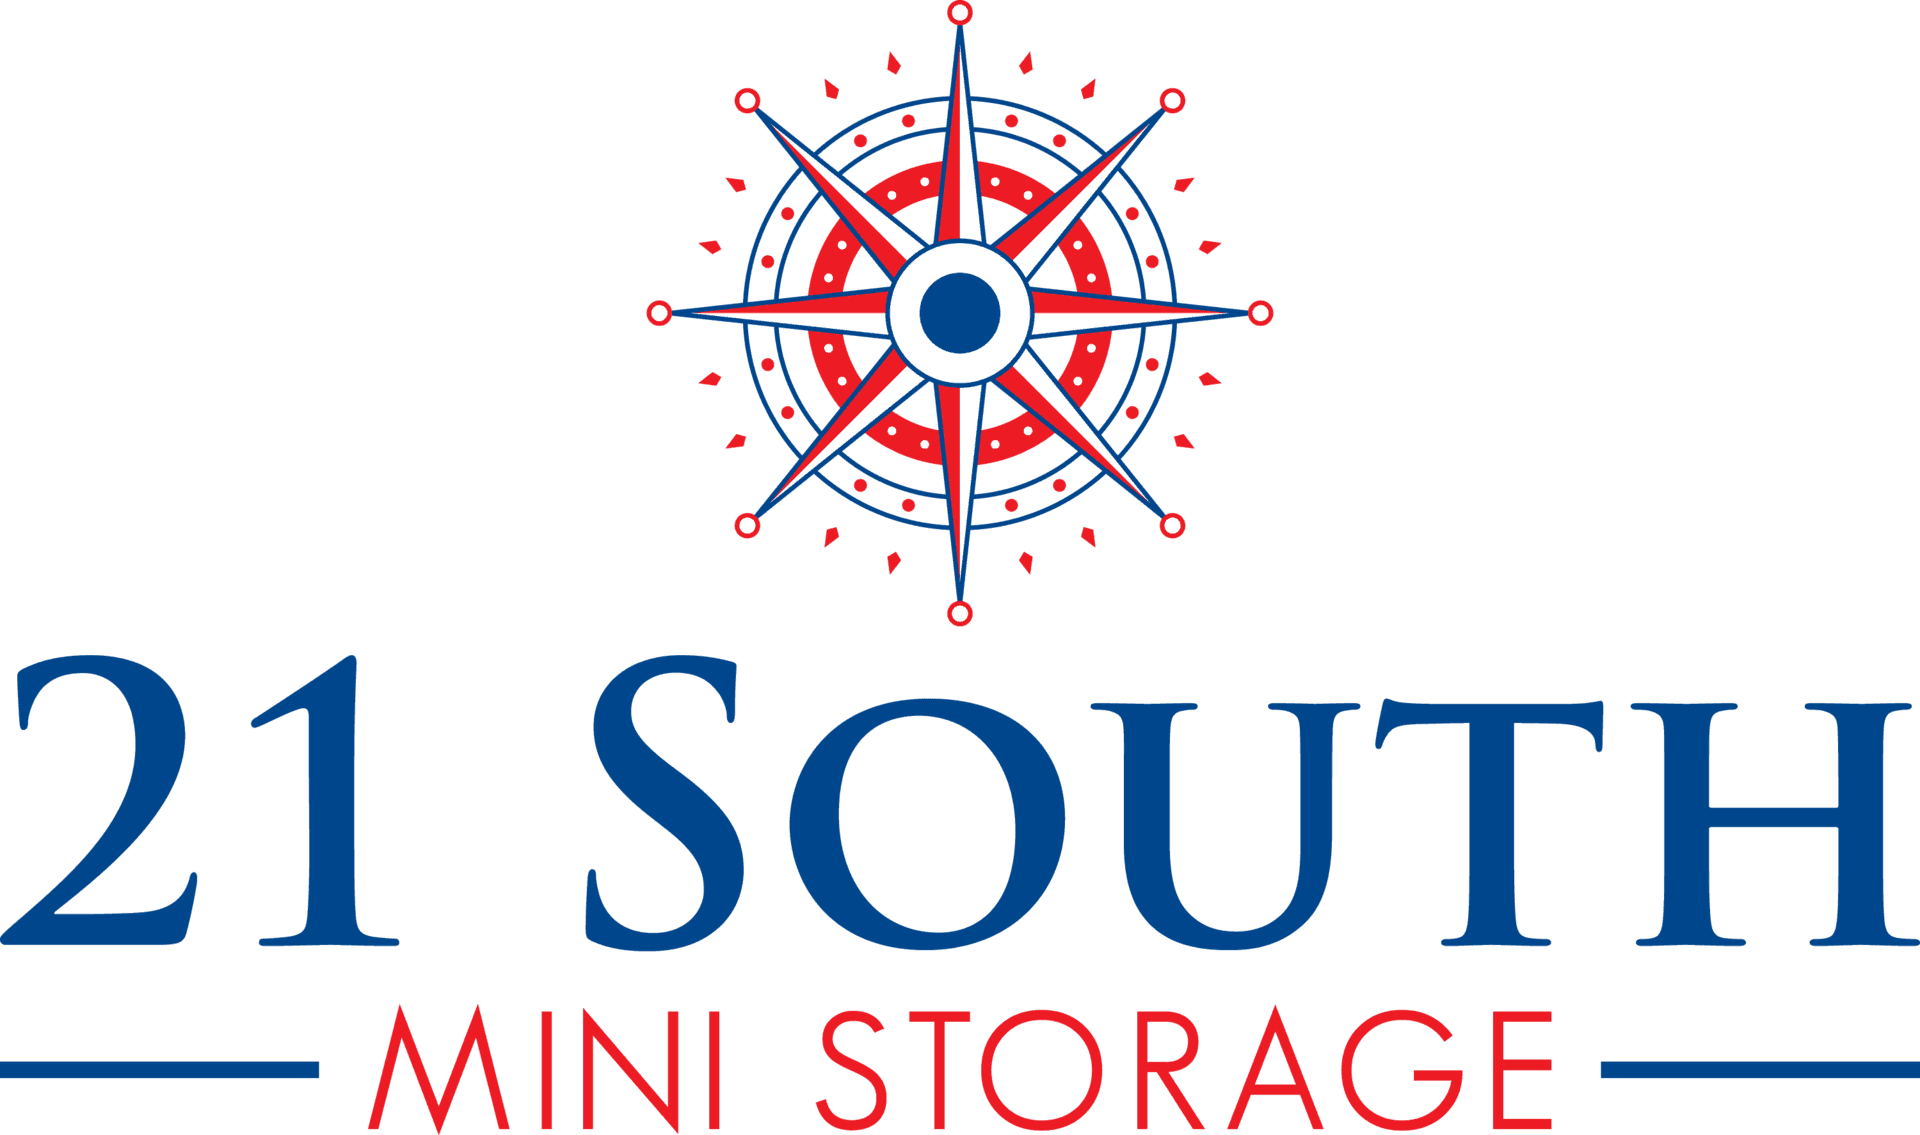 21 South Mini Storage Storage Facility Rincon Ga